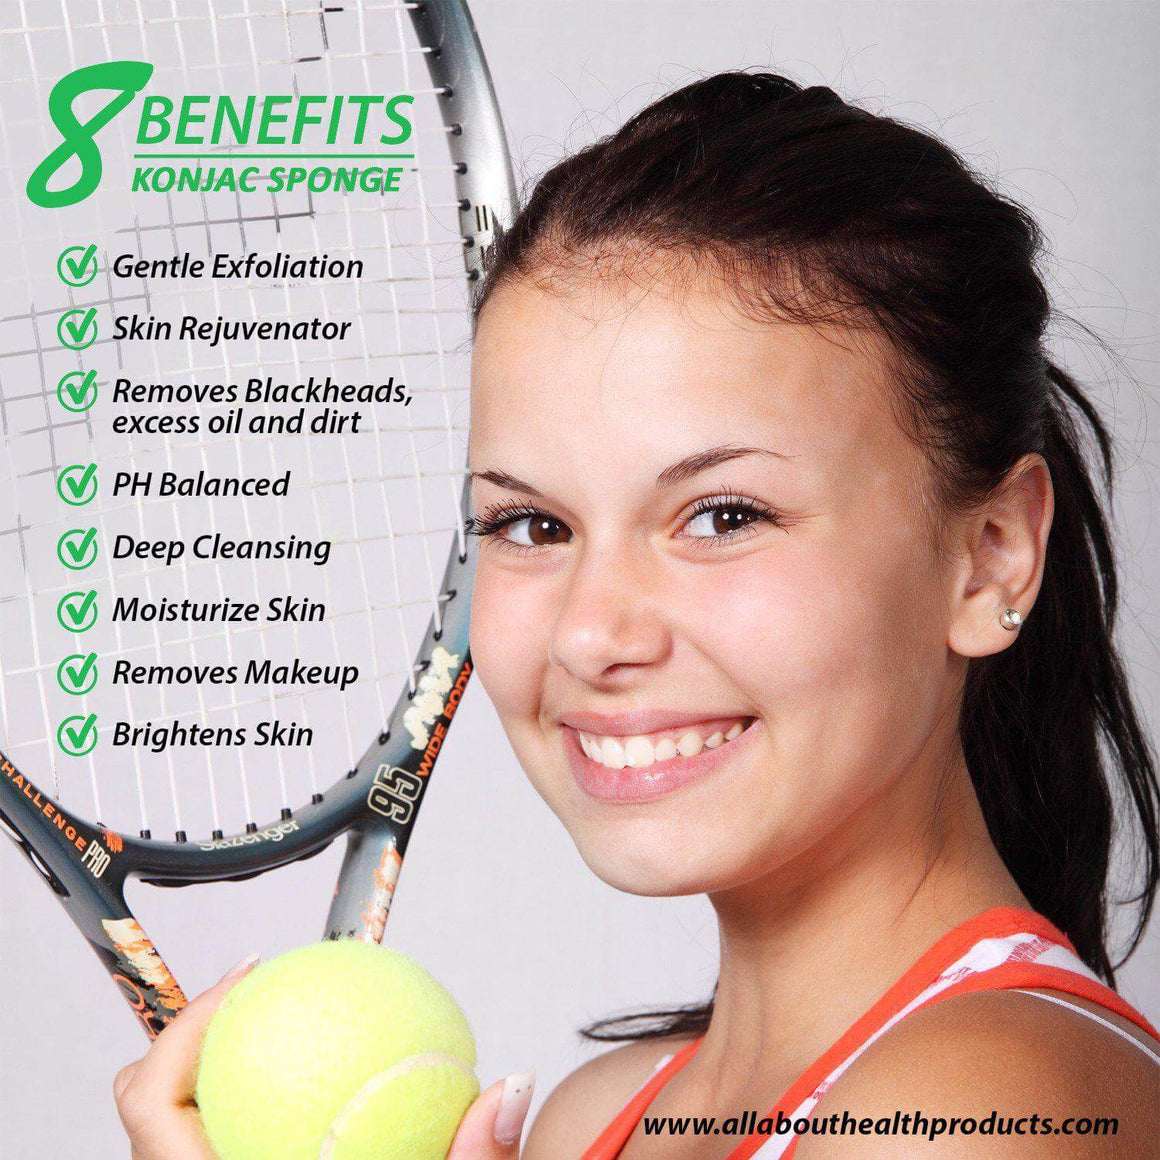 Konjac Sponge for Athletes